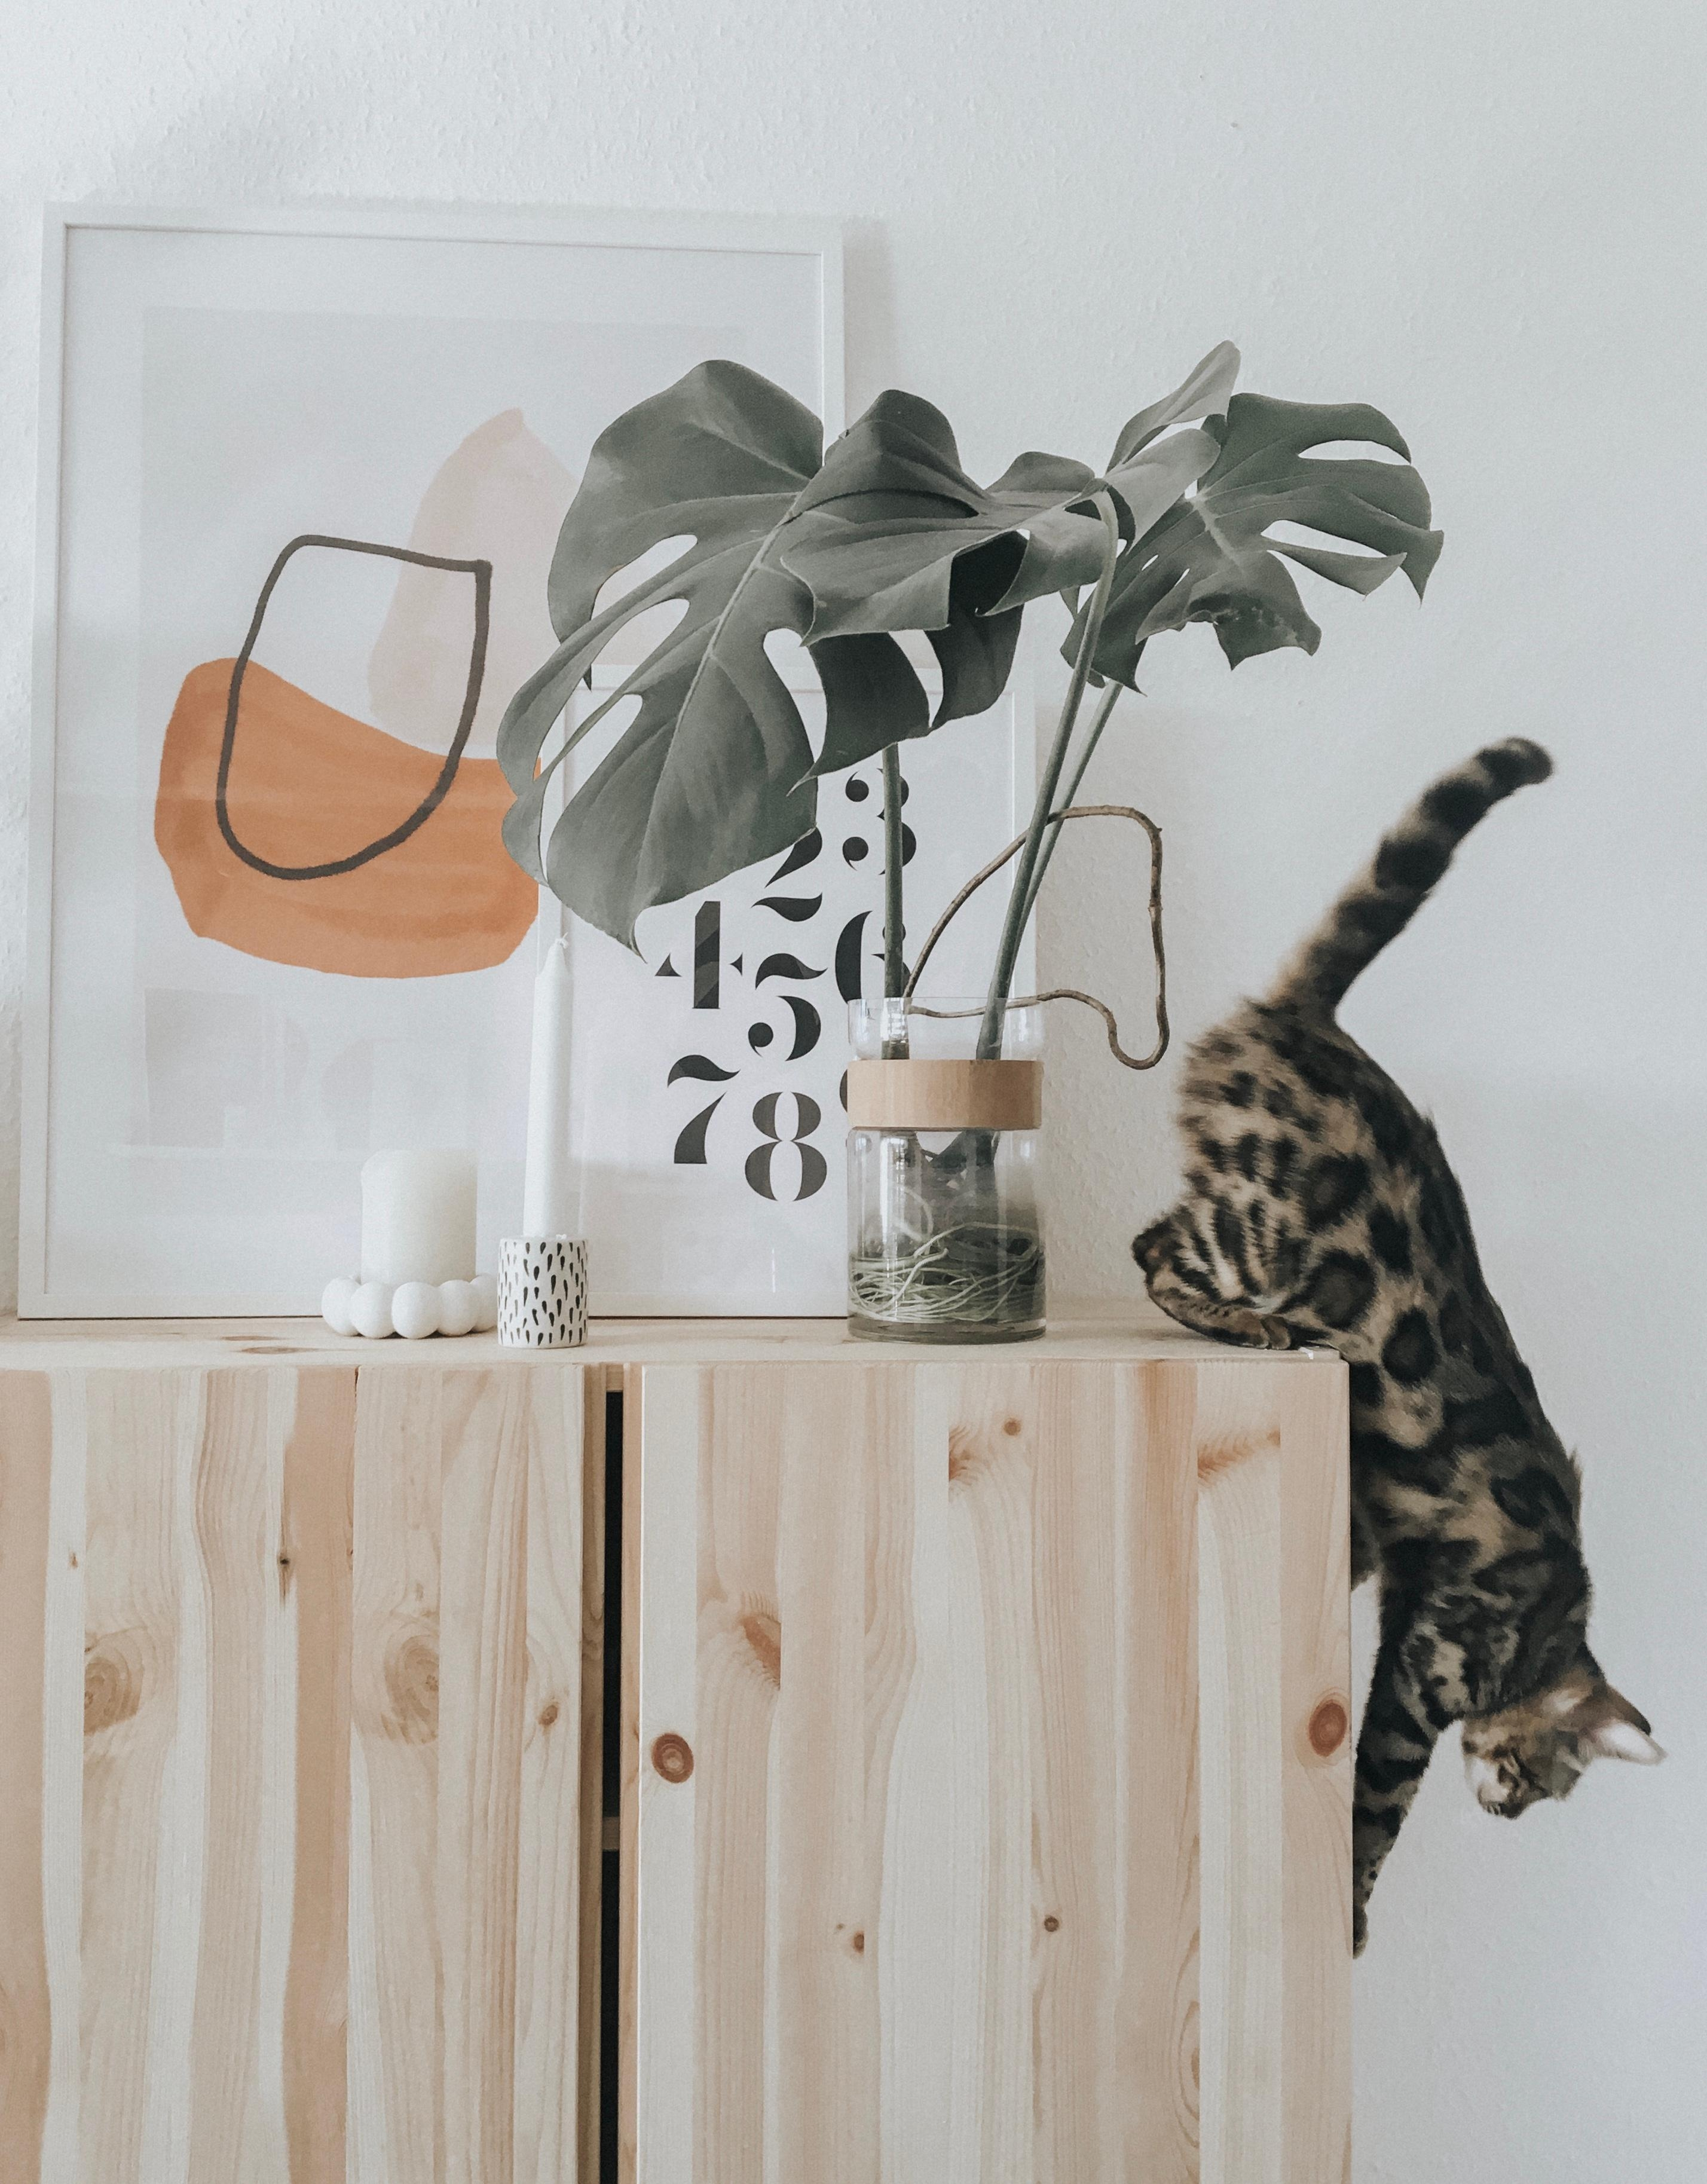 Karla 🧡